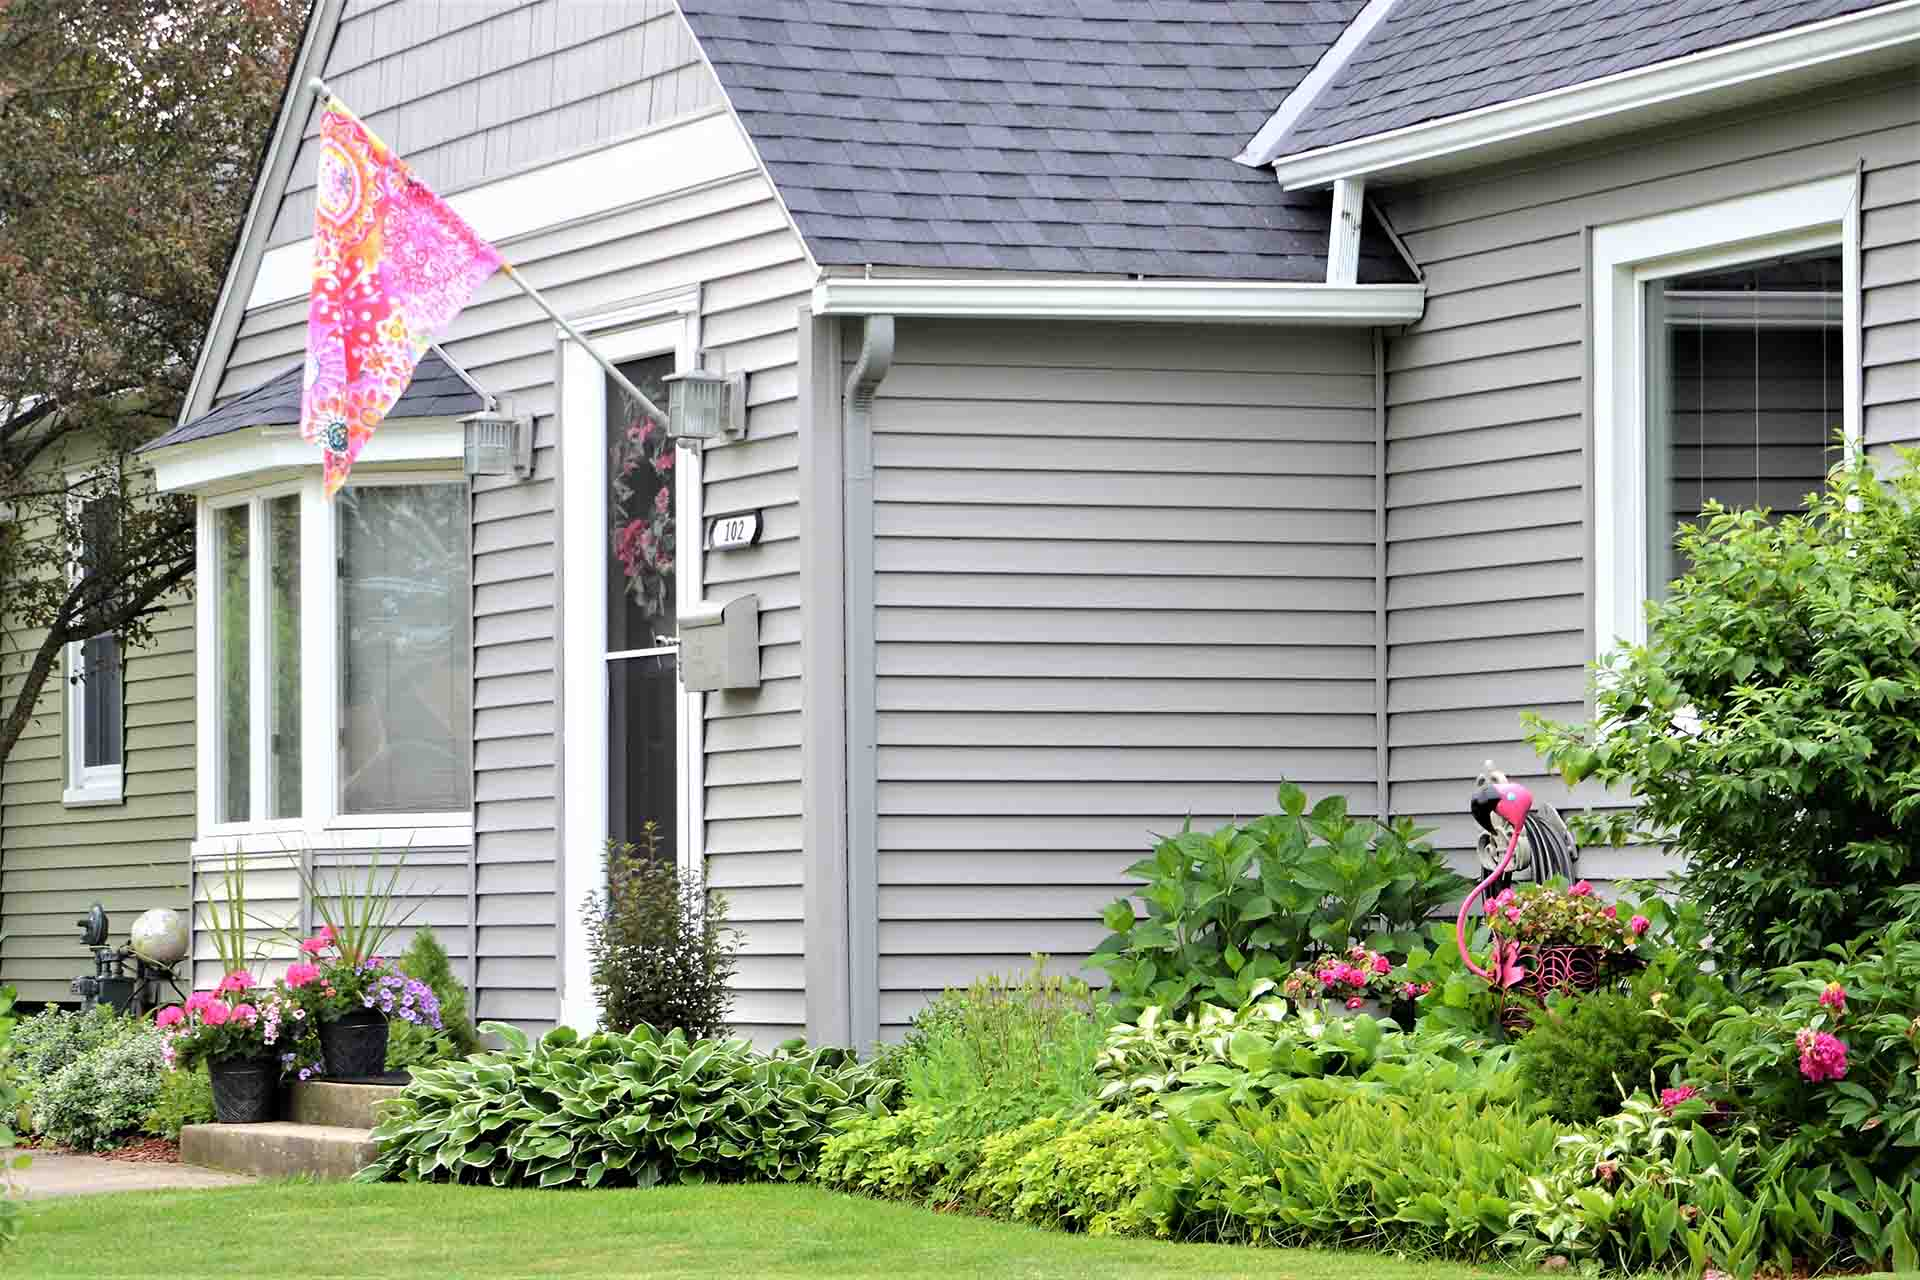 5 Problems Caused By Not Maintaining Your Vinyl Siding